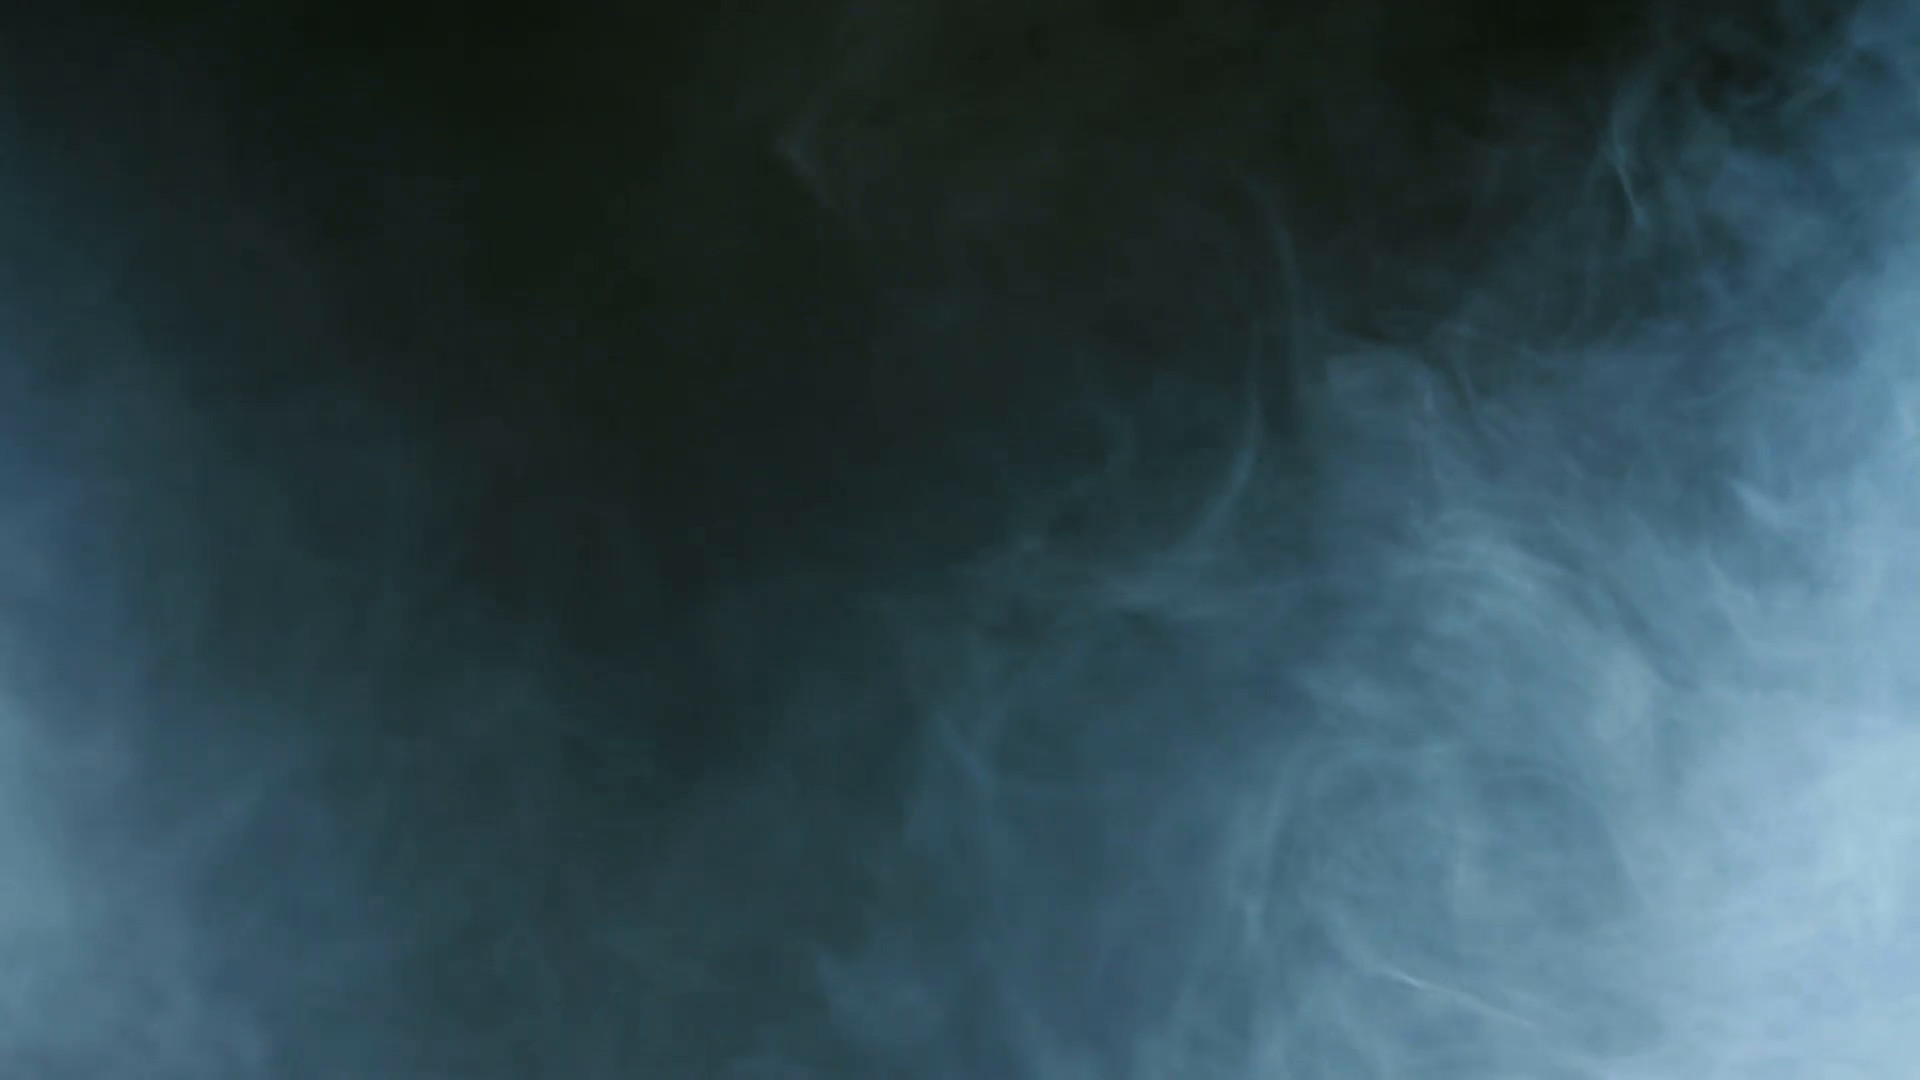 Subscription Library Blue smoke on black background. Cigarette smoke. Smoke  effect. Fog background. Abstract